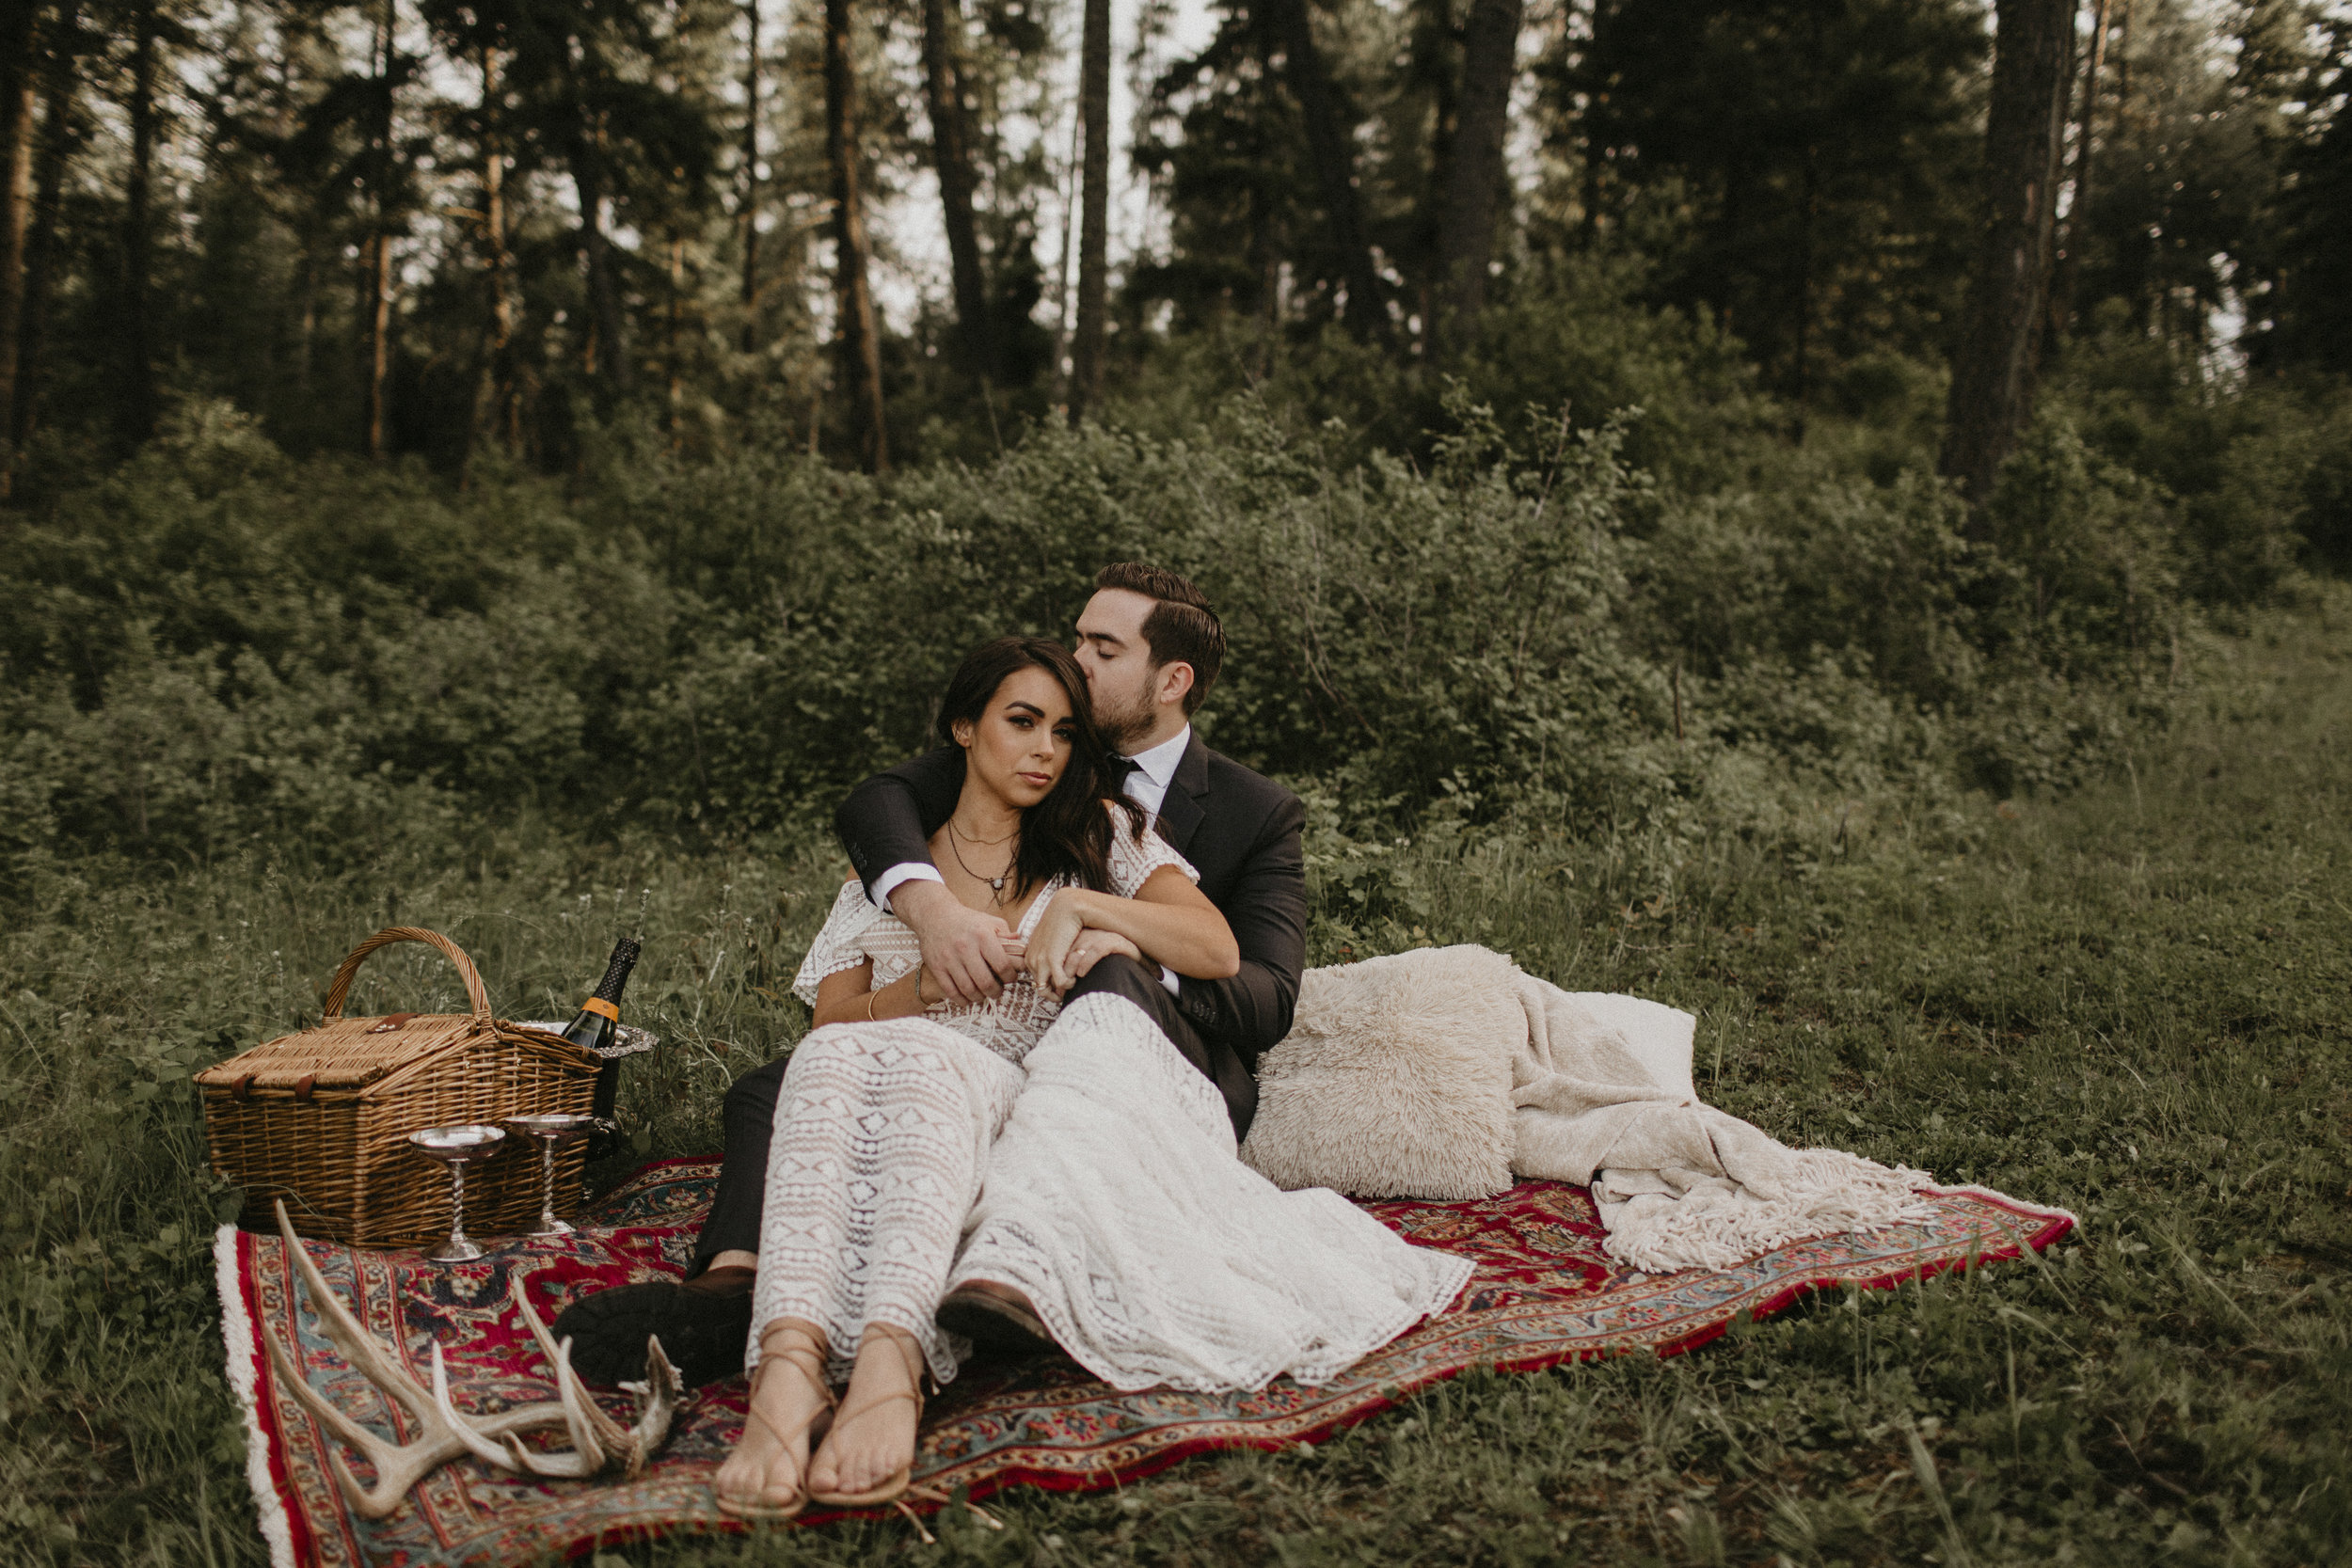 Spokane boho cattle wedding happily ever after dinner for two bride and groom couples table